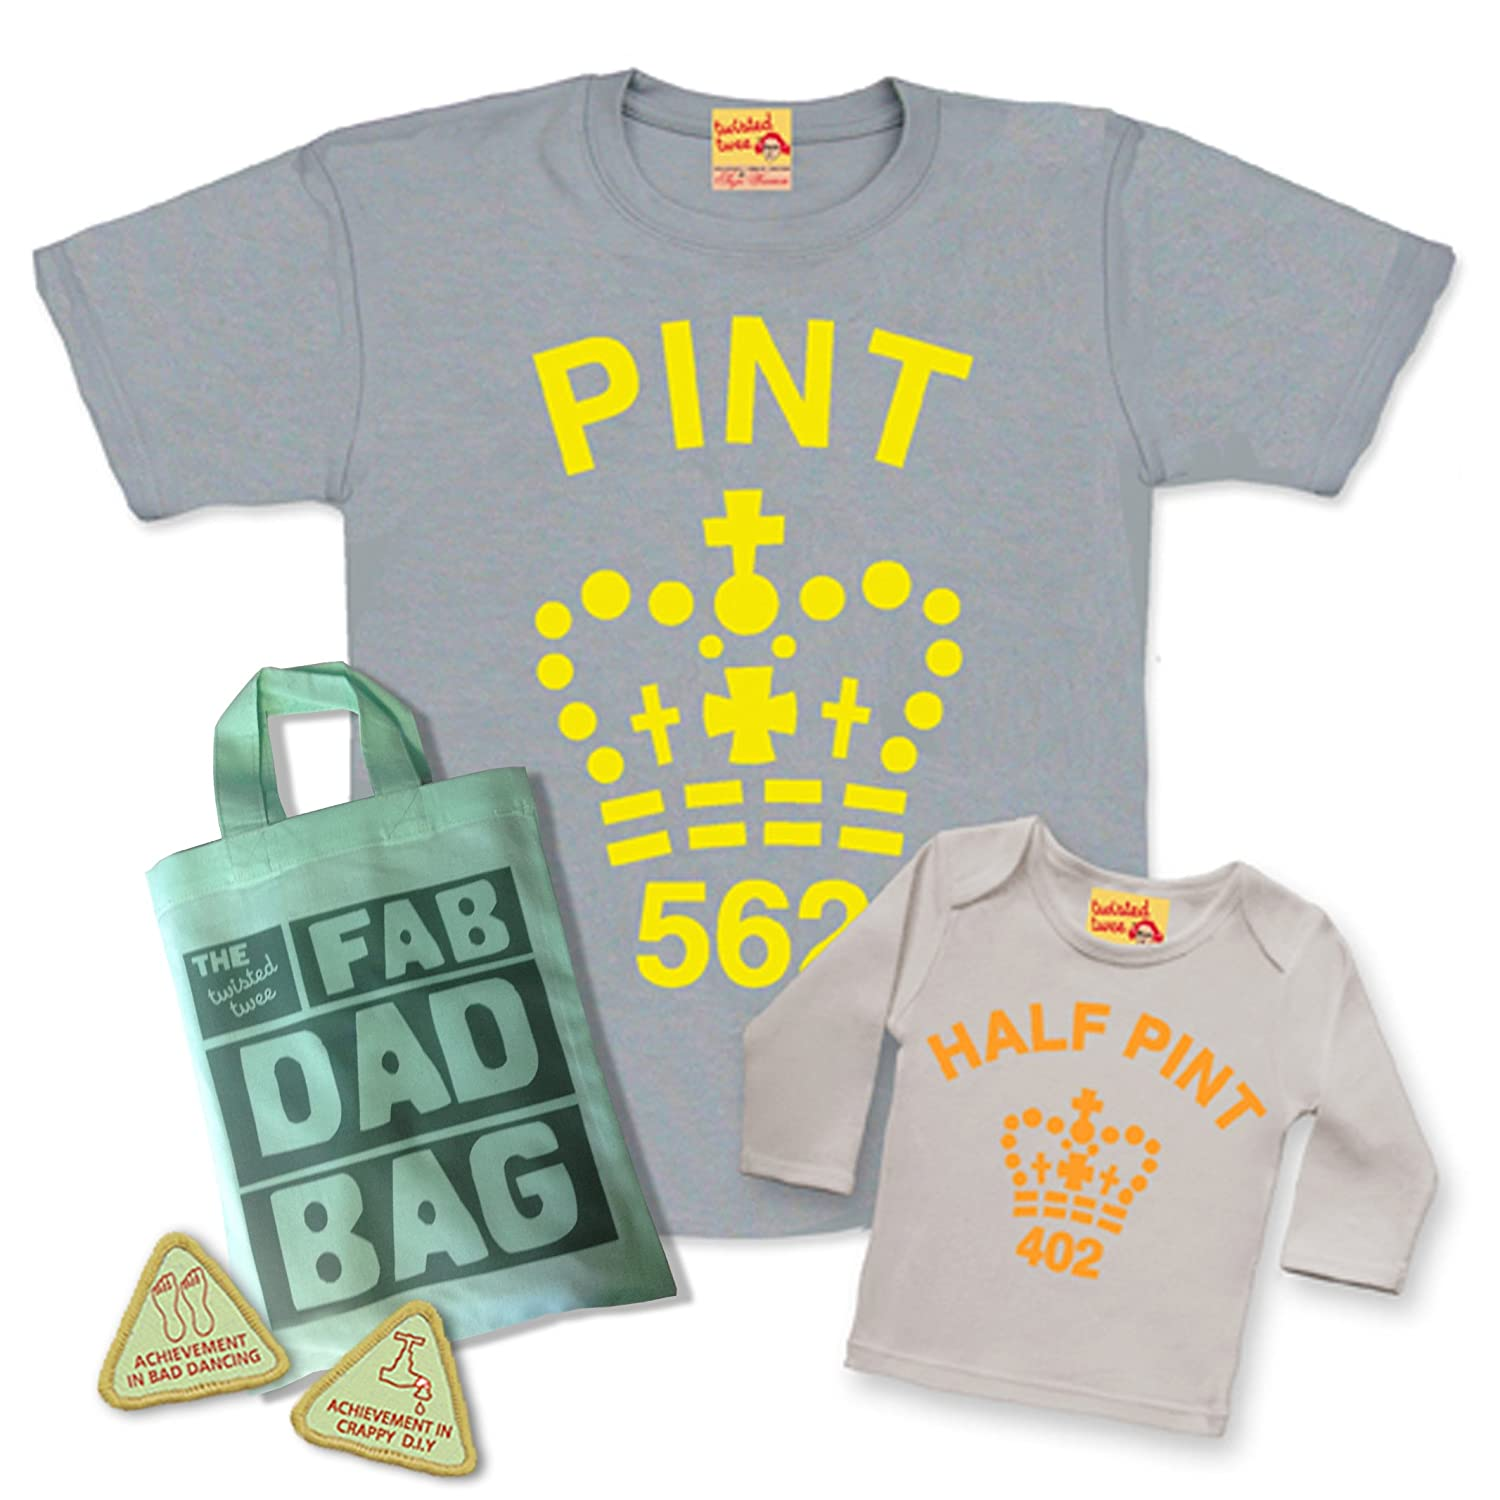 fd060a63 Matching Pint & Half Pint T shirt Set for Father & Son or Daughter - Grey  Citrus - with Fab Dad Goody Bag and extra dad treats.: Amazon.co.uk:  Clothing